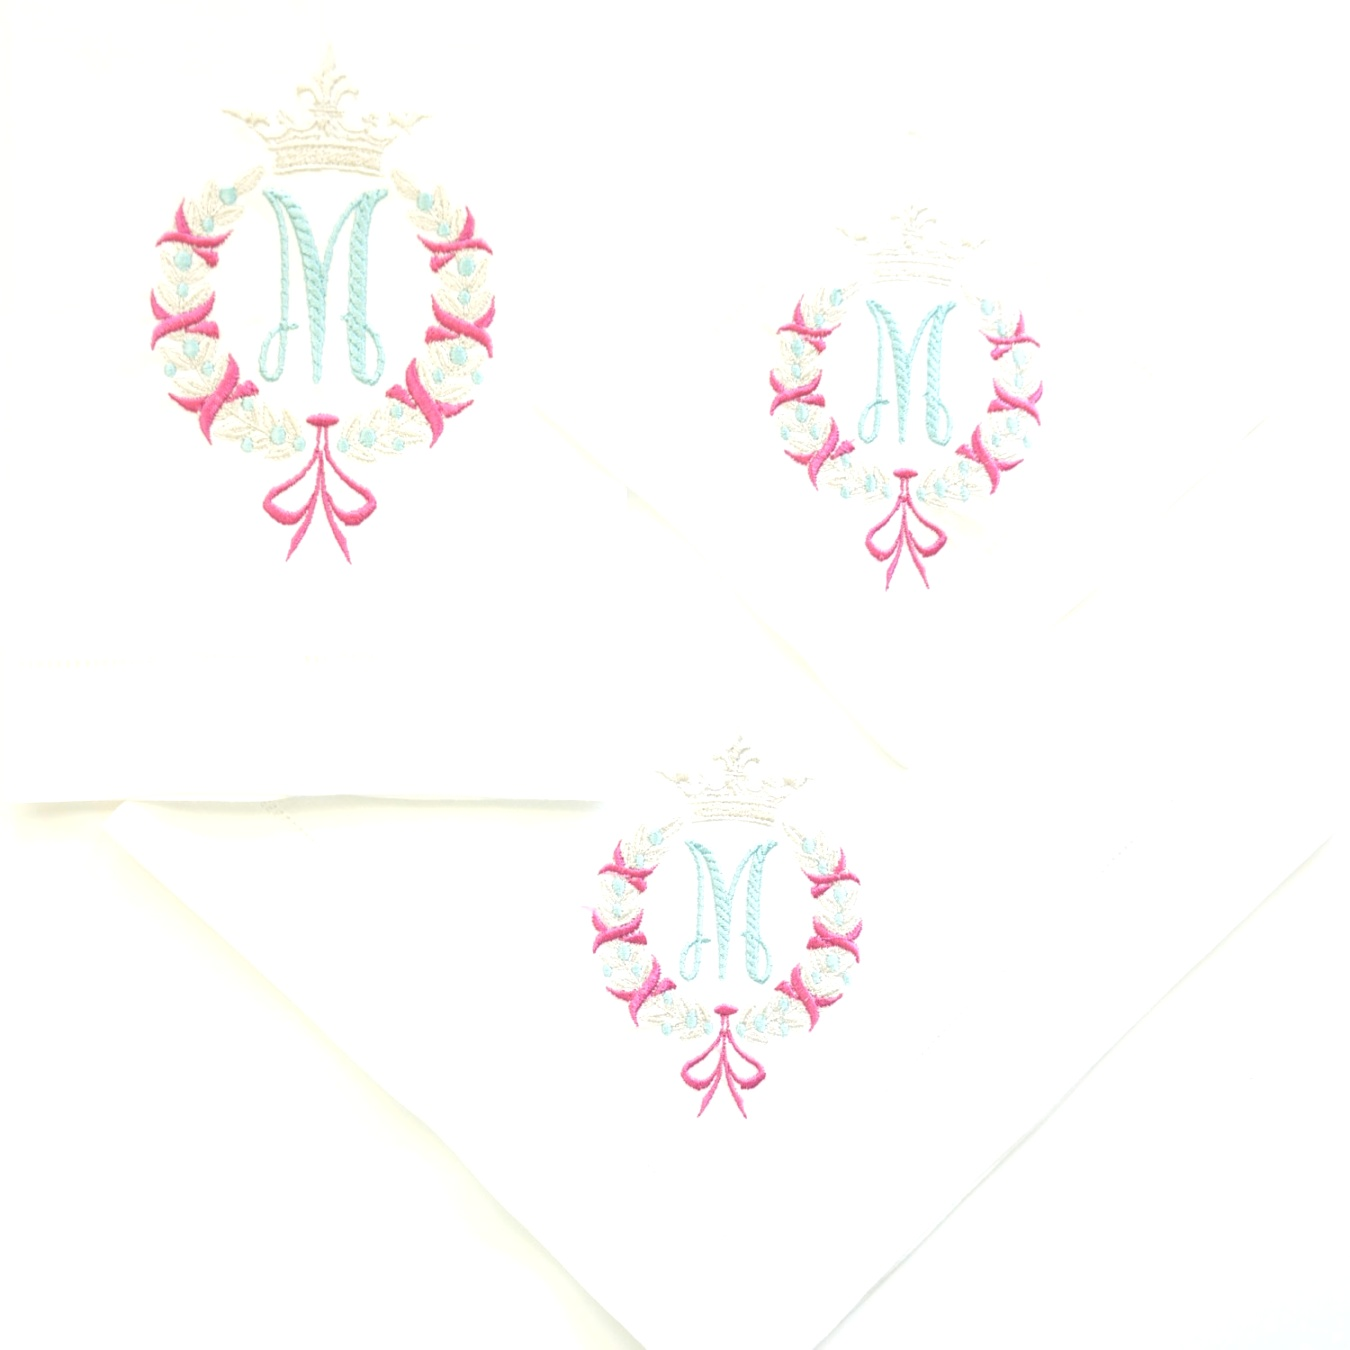 monogrammed table linens | Laurel Wreath Monogram , dinner napkins, guest towels and cocktail ..